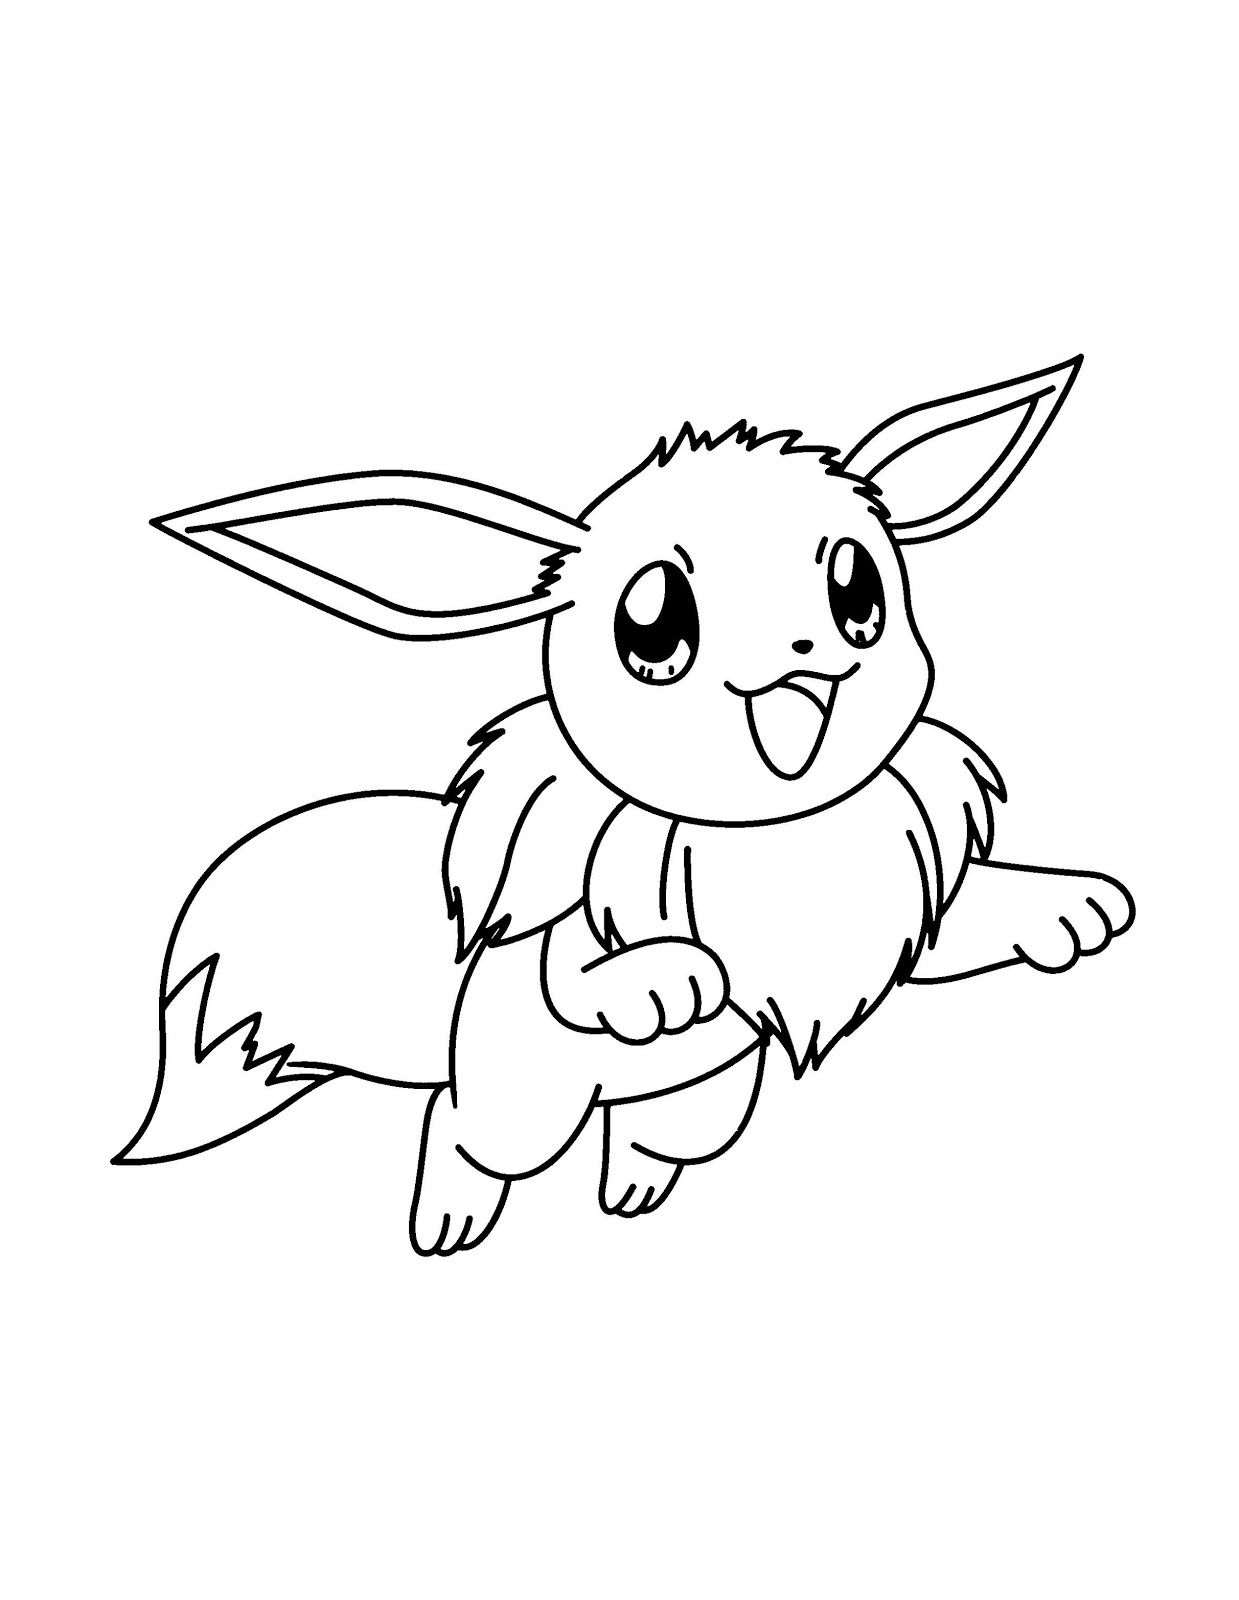 Eevee Coloring Pages Printable Free Pokemon Coloring Pages Pikachu Coloring Page Pokemon Coloring Pages Pokemon Coloring Sheets